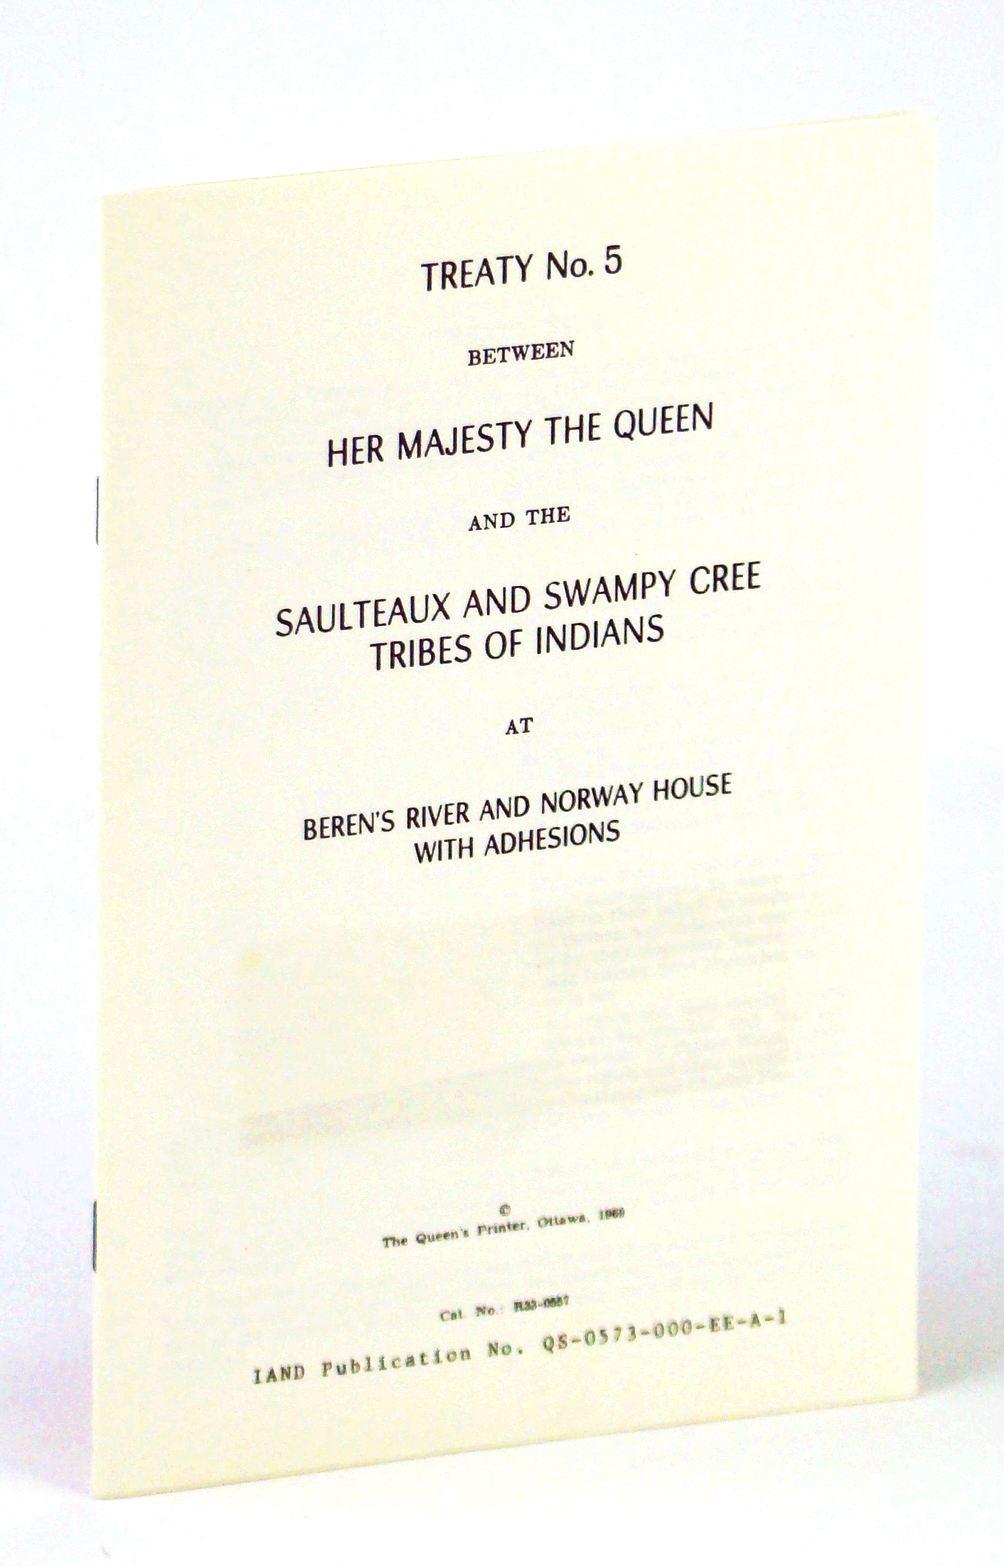 Image for Treaty No. (Number) 5 (Five) Between Her Majesty The Queen and the Saulteaux and Swampy Cree Tribes of Indians at Beren's River and Norway House with Adhesions